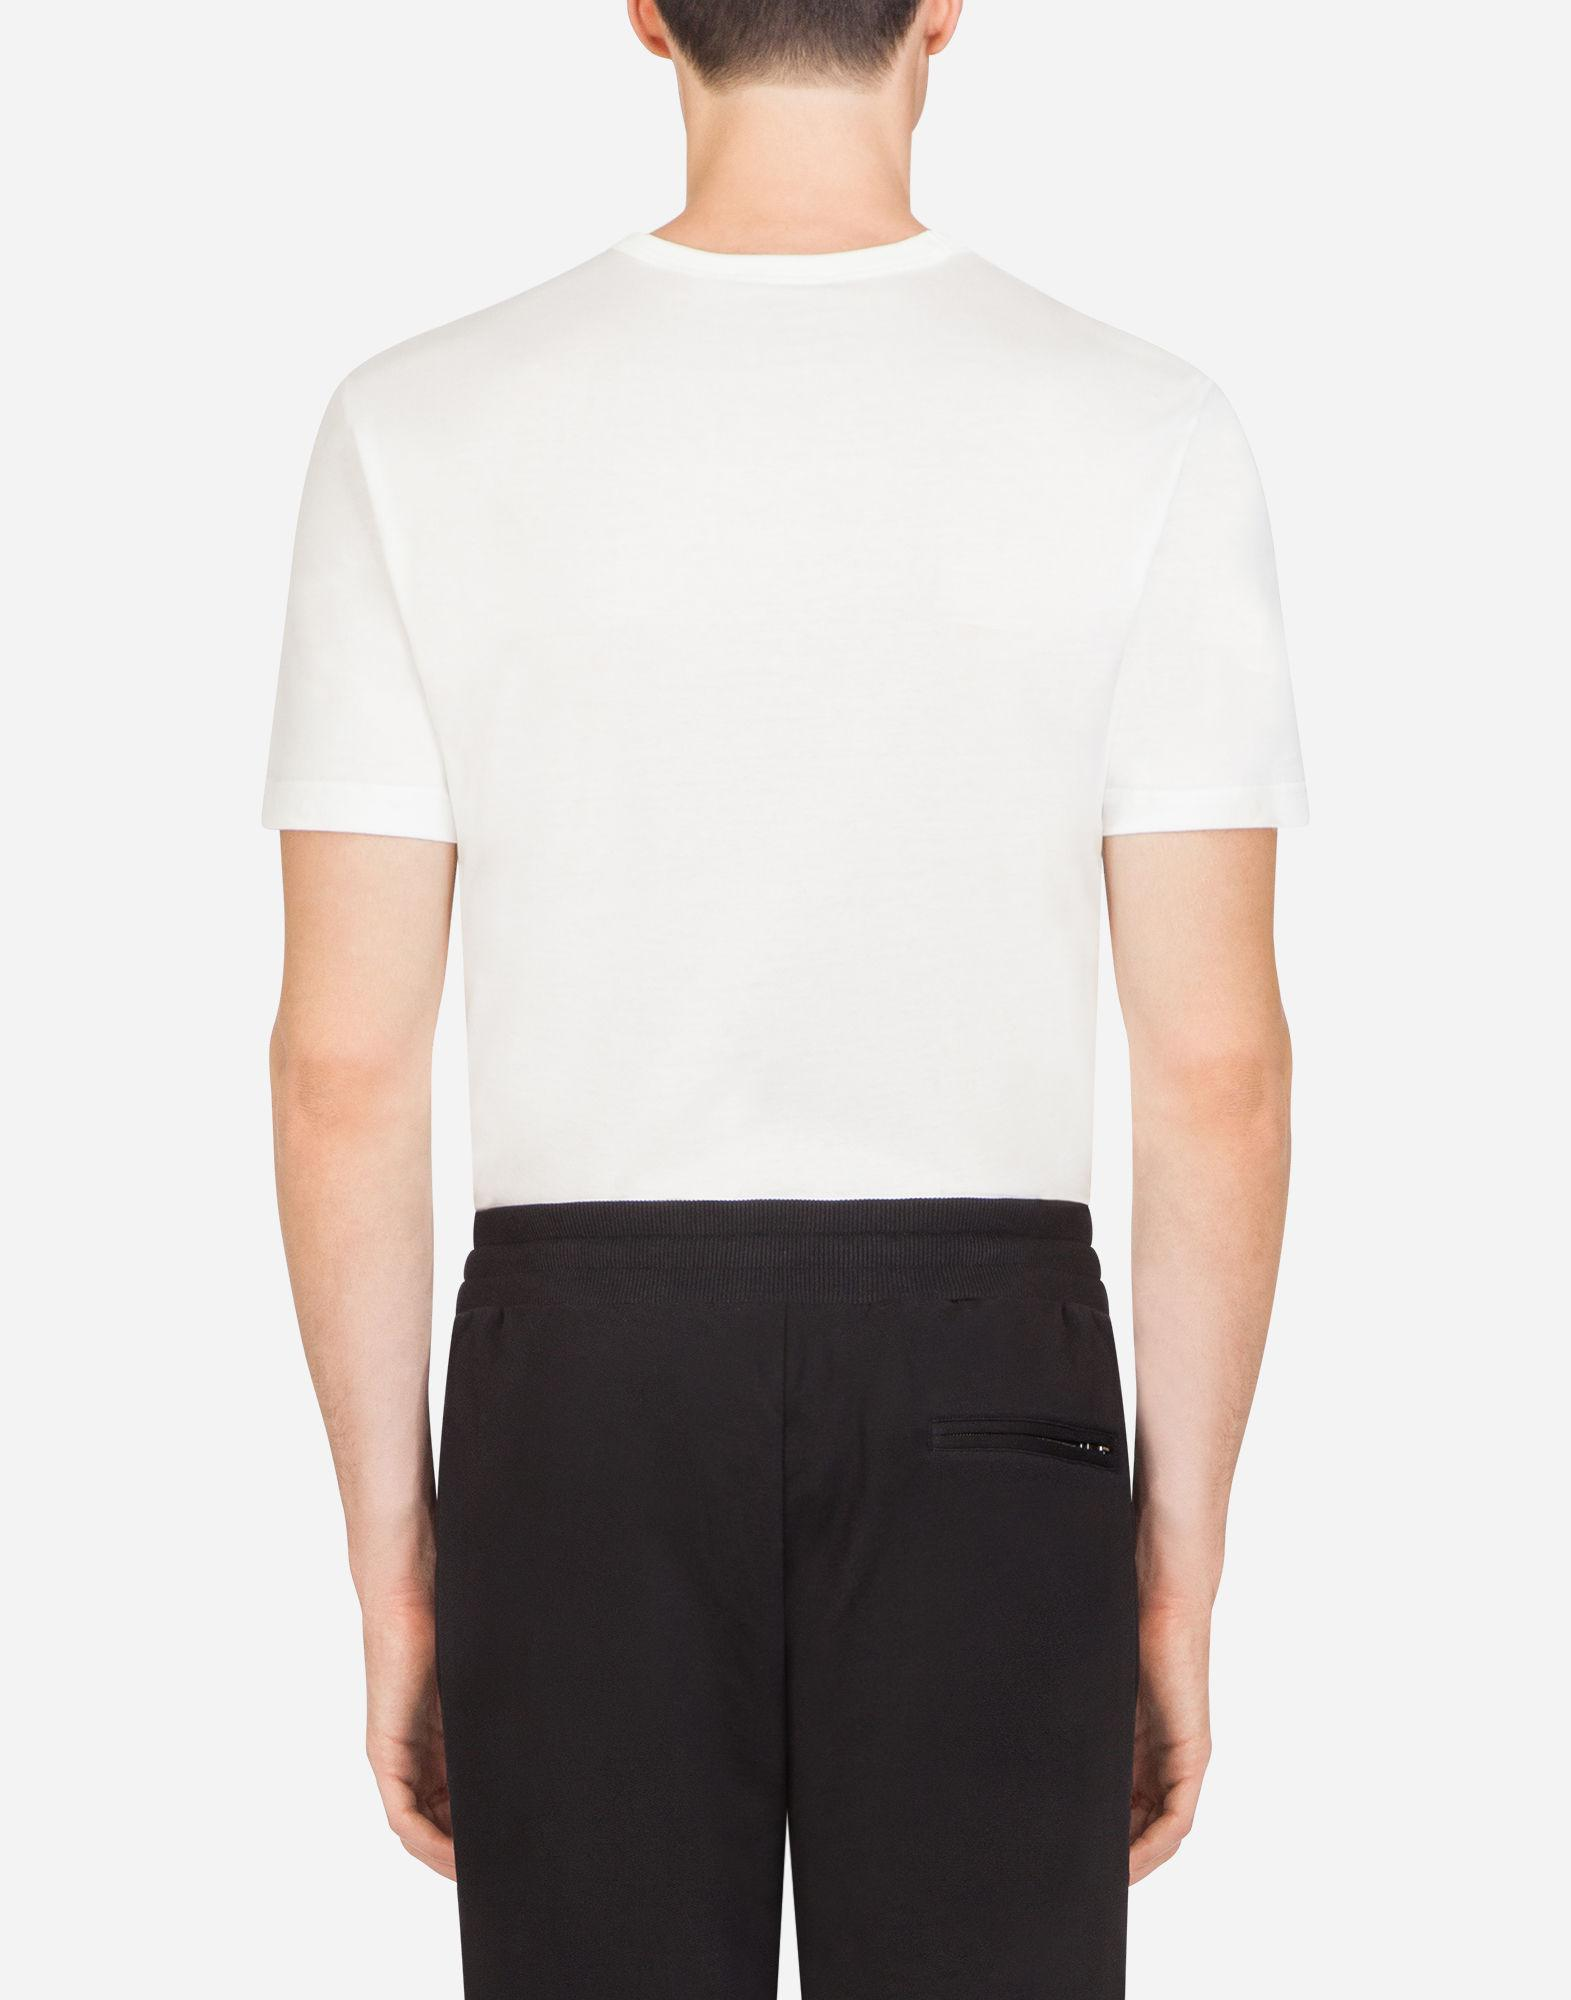 aa93ca13a Dolce & Gabbana Cotton T-shirt With Branded Plate in White for Men - Save  3% - Lyst